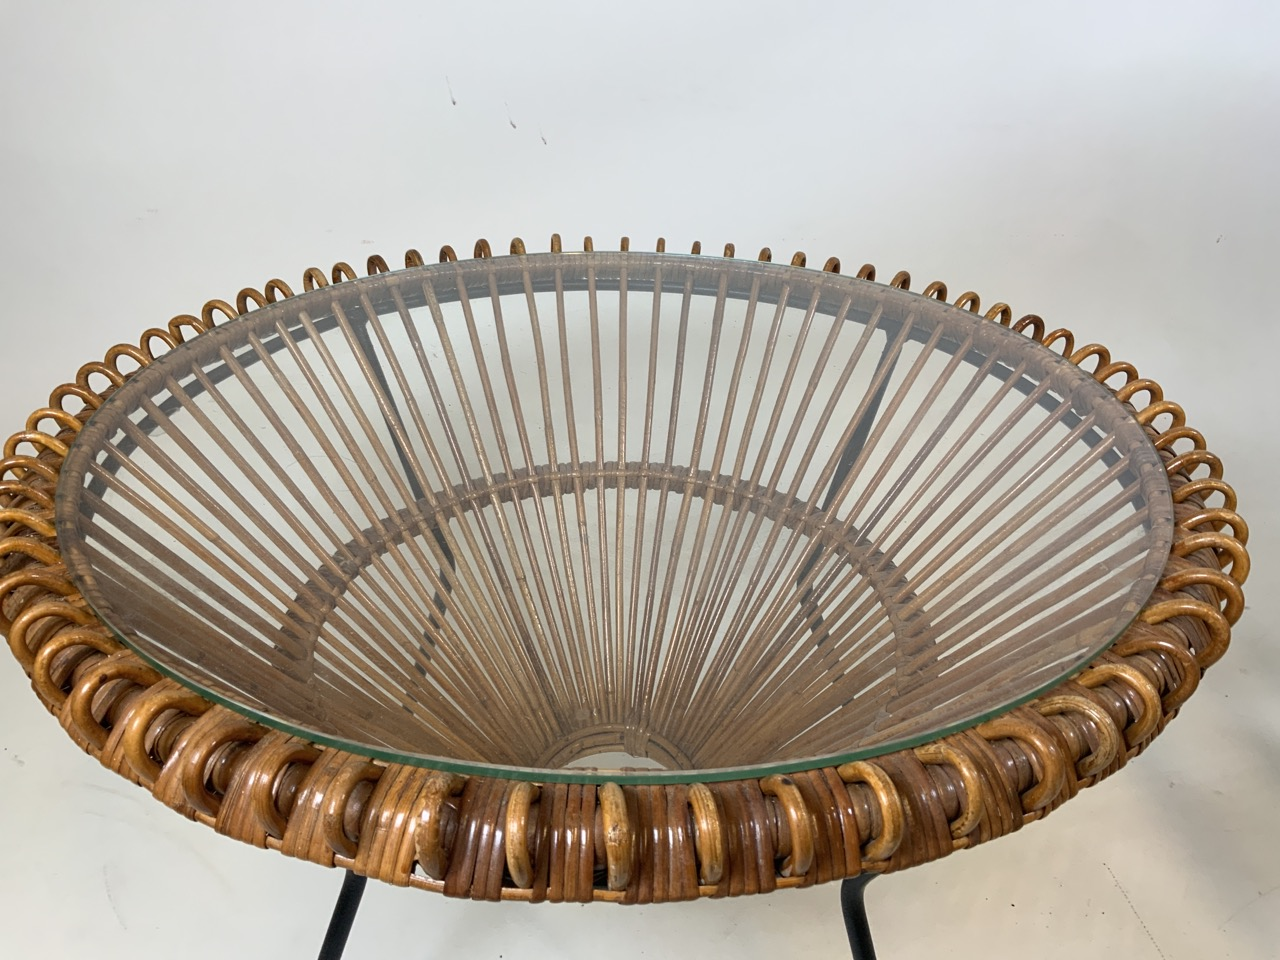 A Franco Albini mid century circular coffee table in wicker and metal with glass top and two - Image 7 of 7